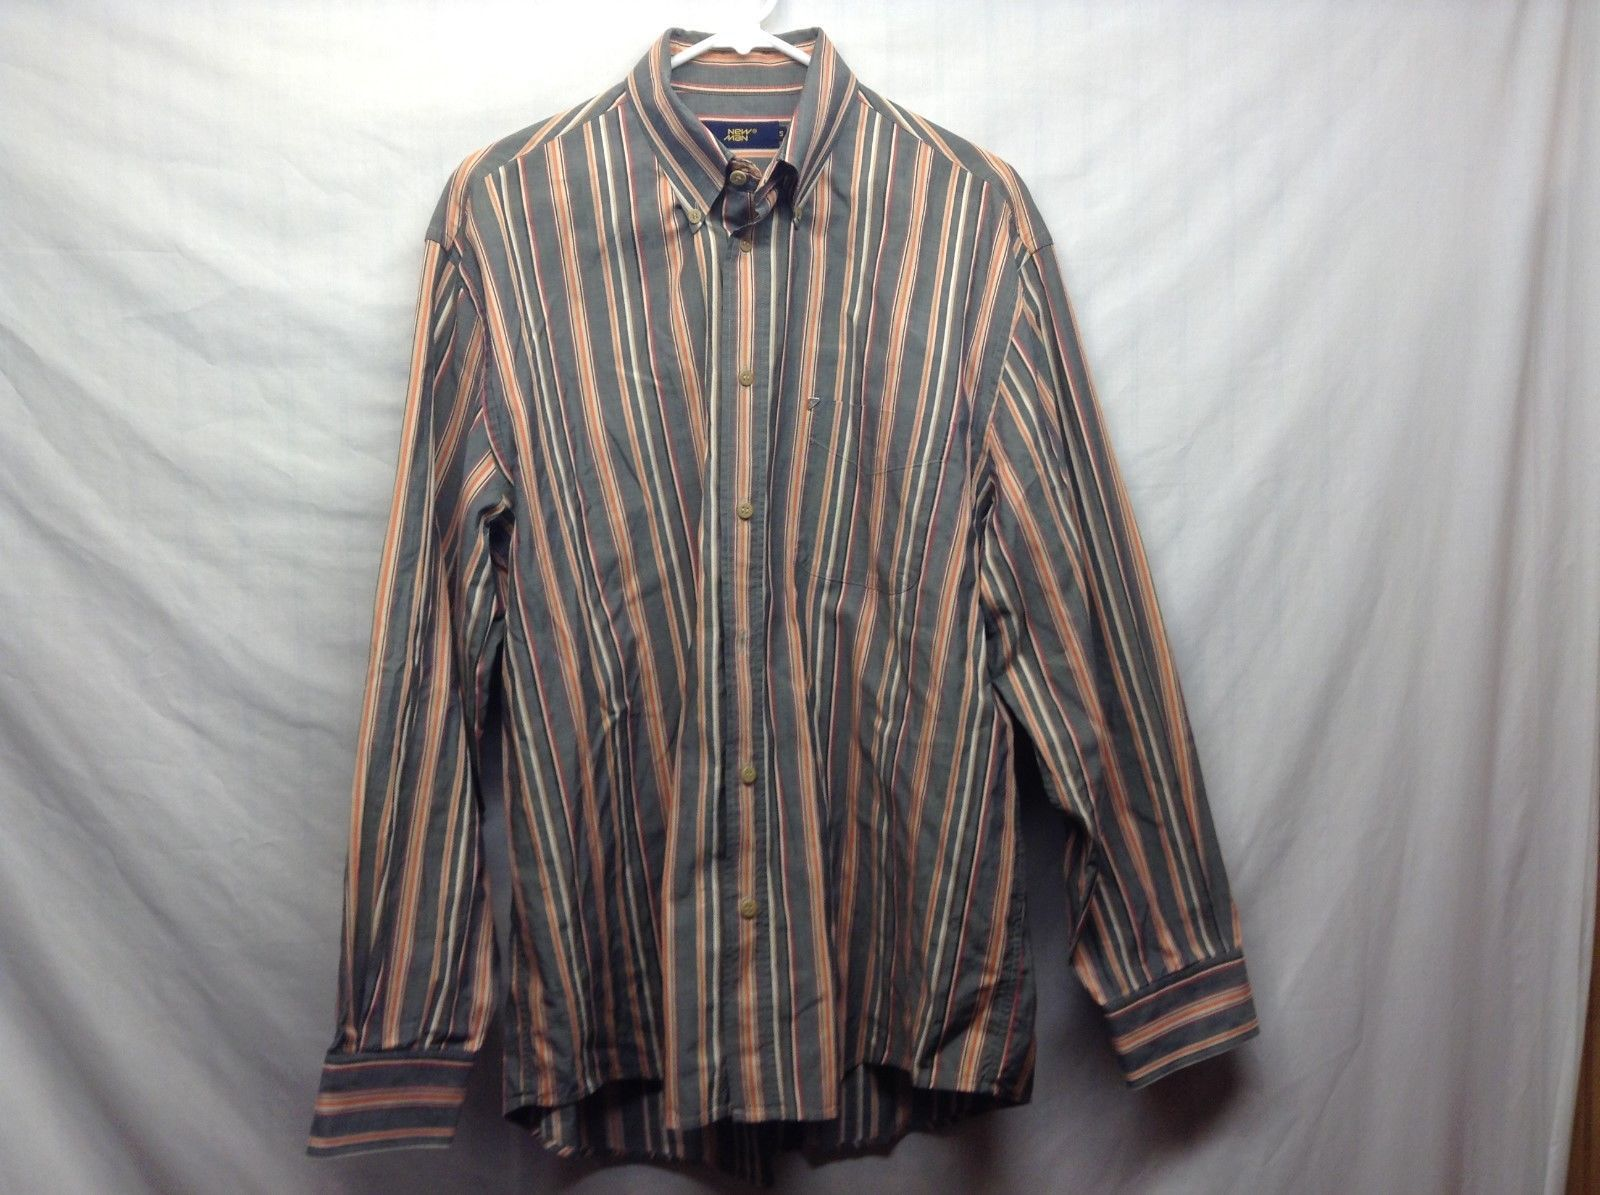 Men's Vertically Lined Multicolor Collared Shirt by New Man